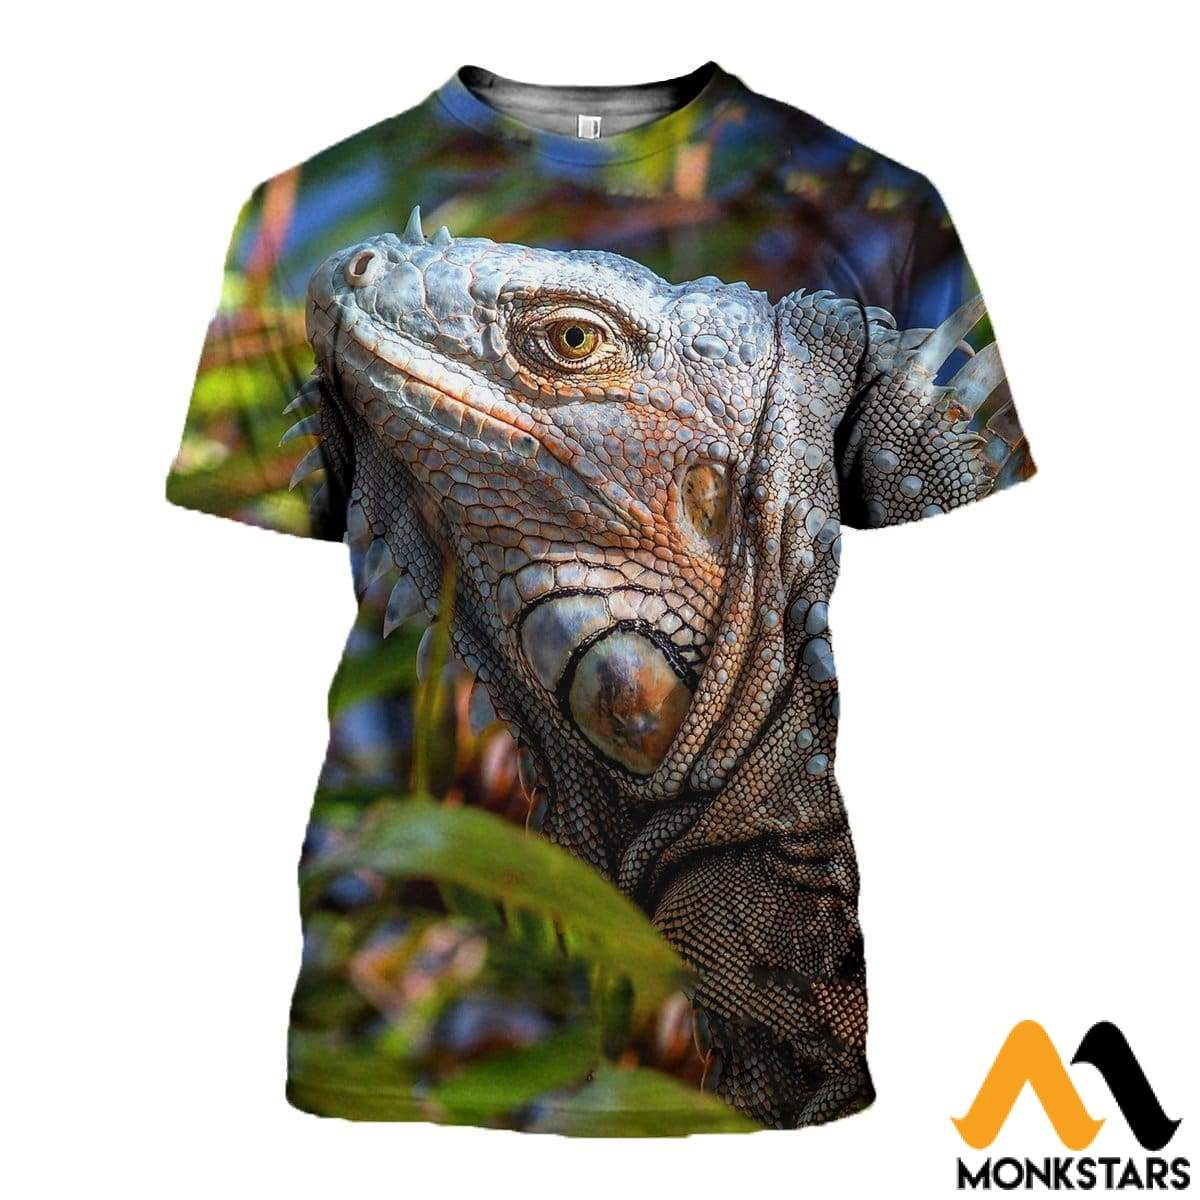 3D All Over Printed Iguana Lizard Clothes T-Shirt / Xs